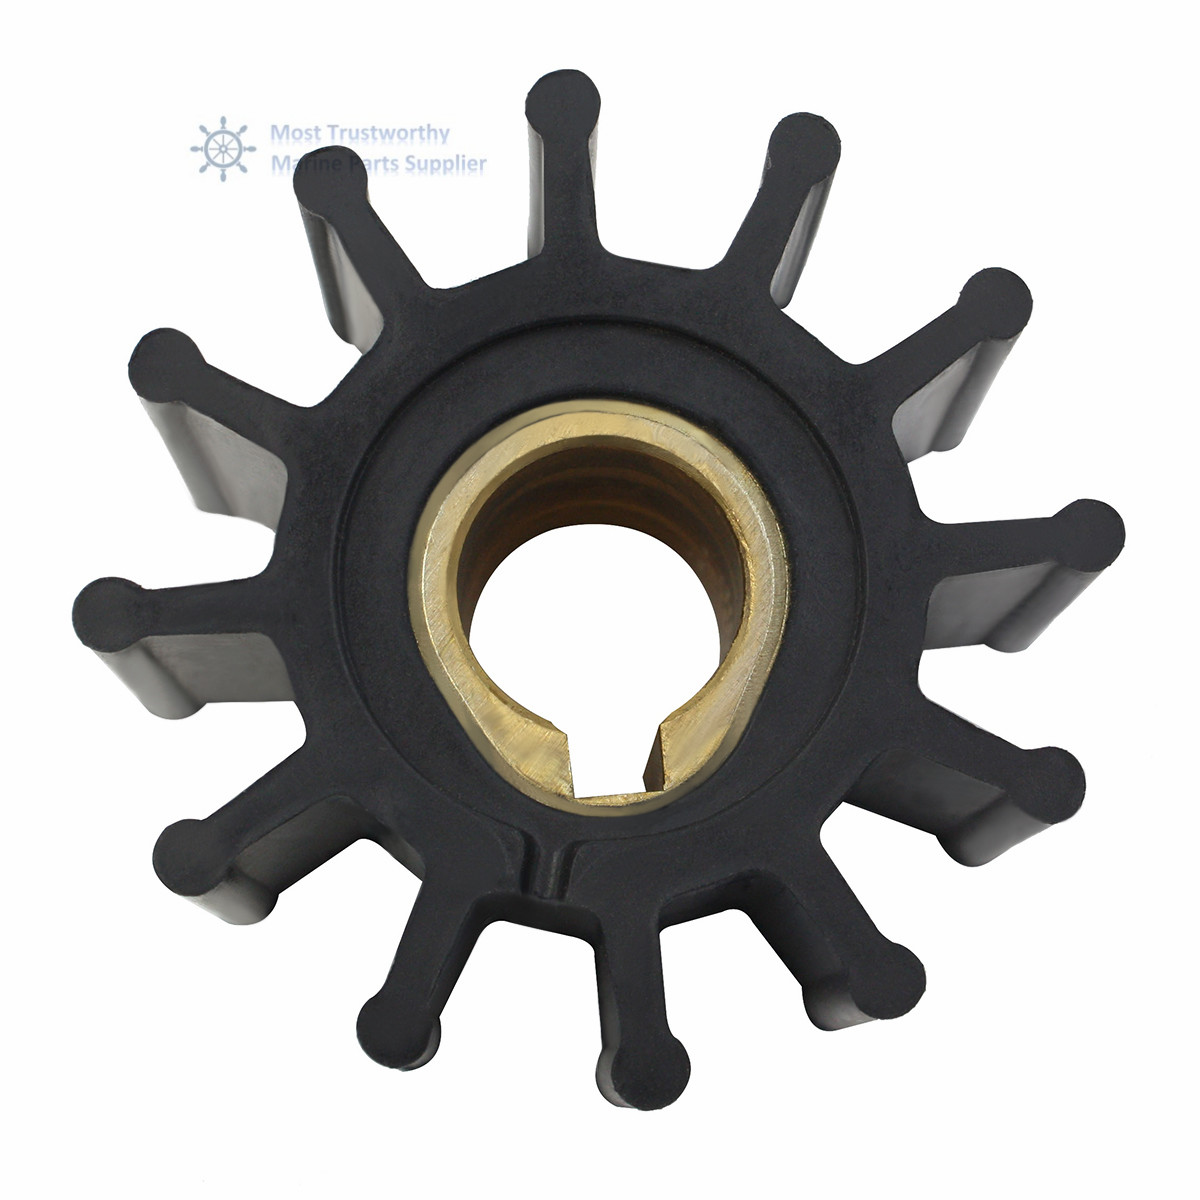 Water Pump Impeller Replacement for Johnson Inboard Motor Engine Parts 09-702B-1